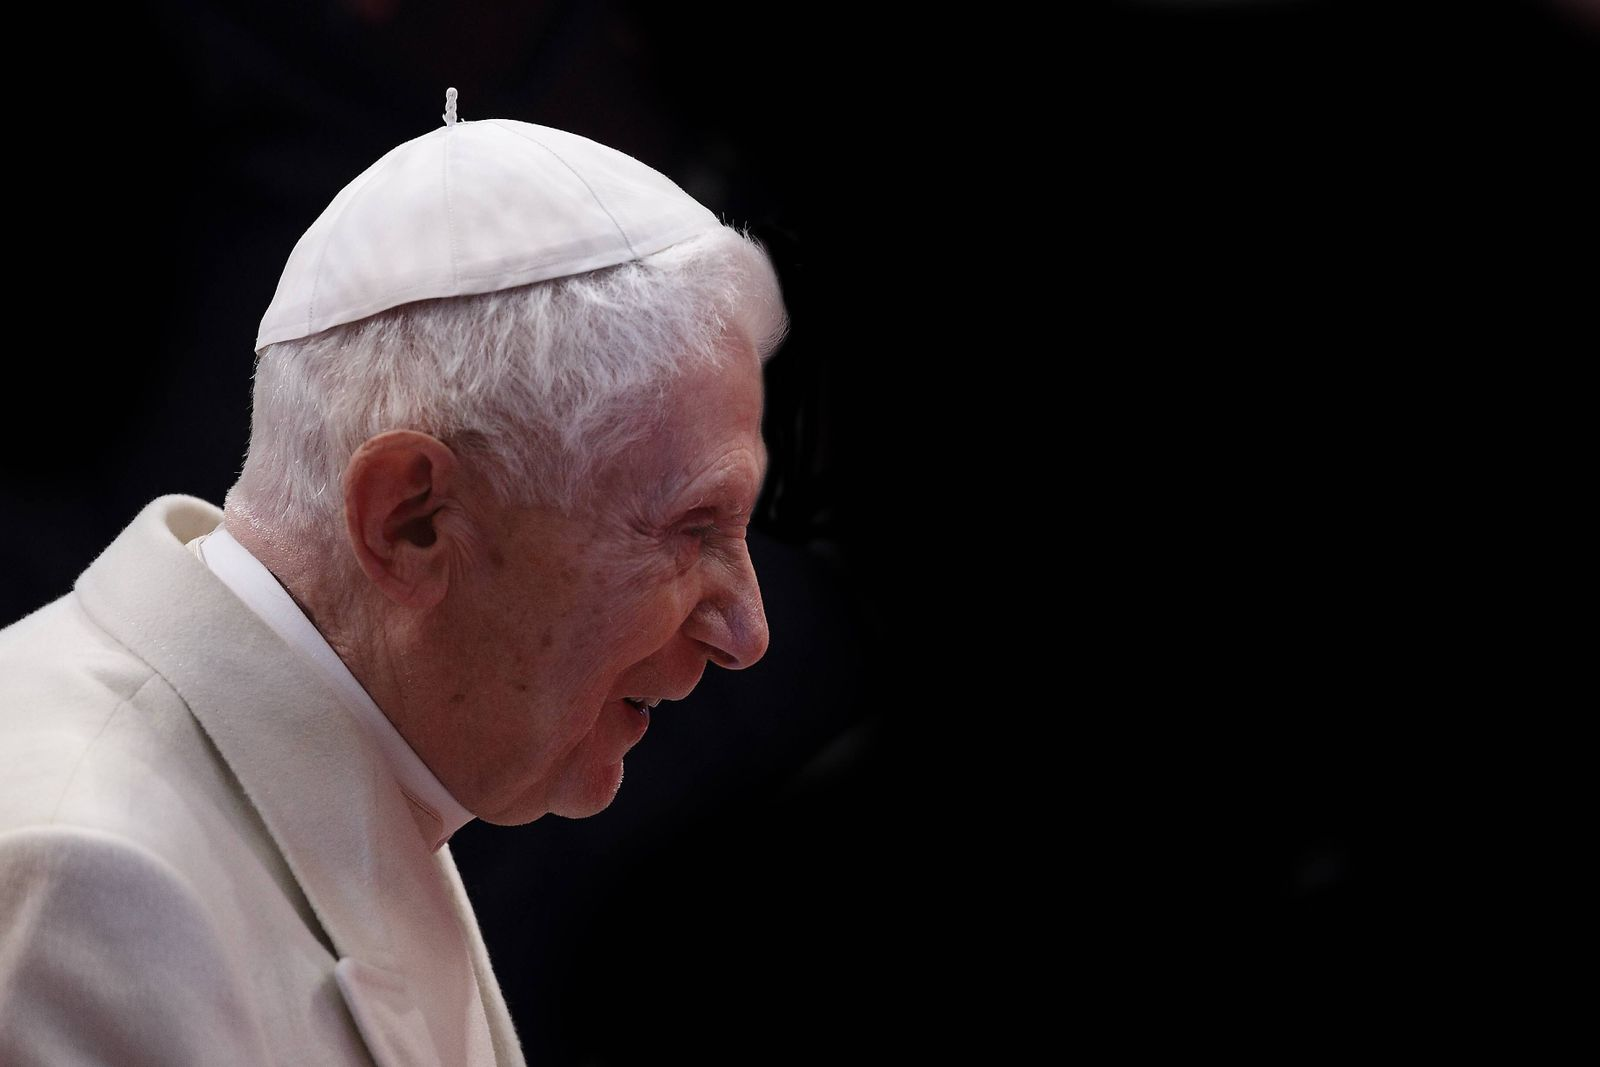 Feb 14, 2015 - Vatican City State (Holy See) - POPE FRANCIS during the Ordinary Public Concistory for the creation of n